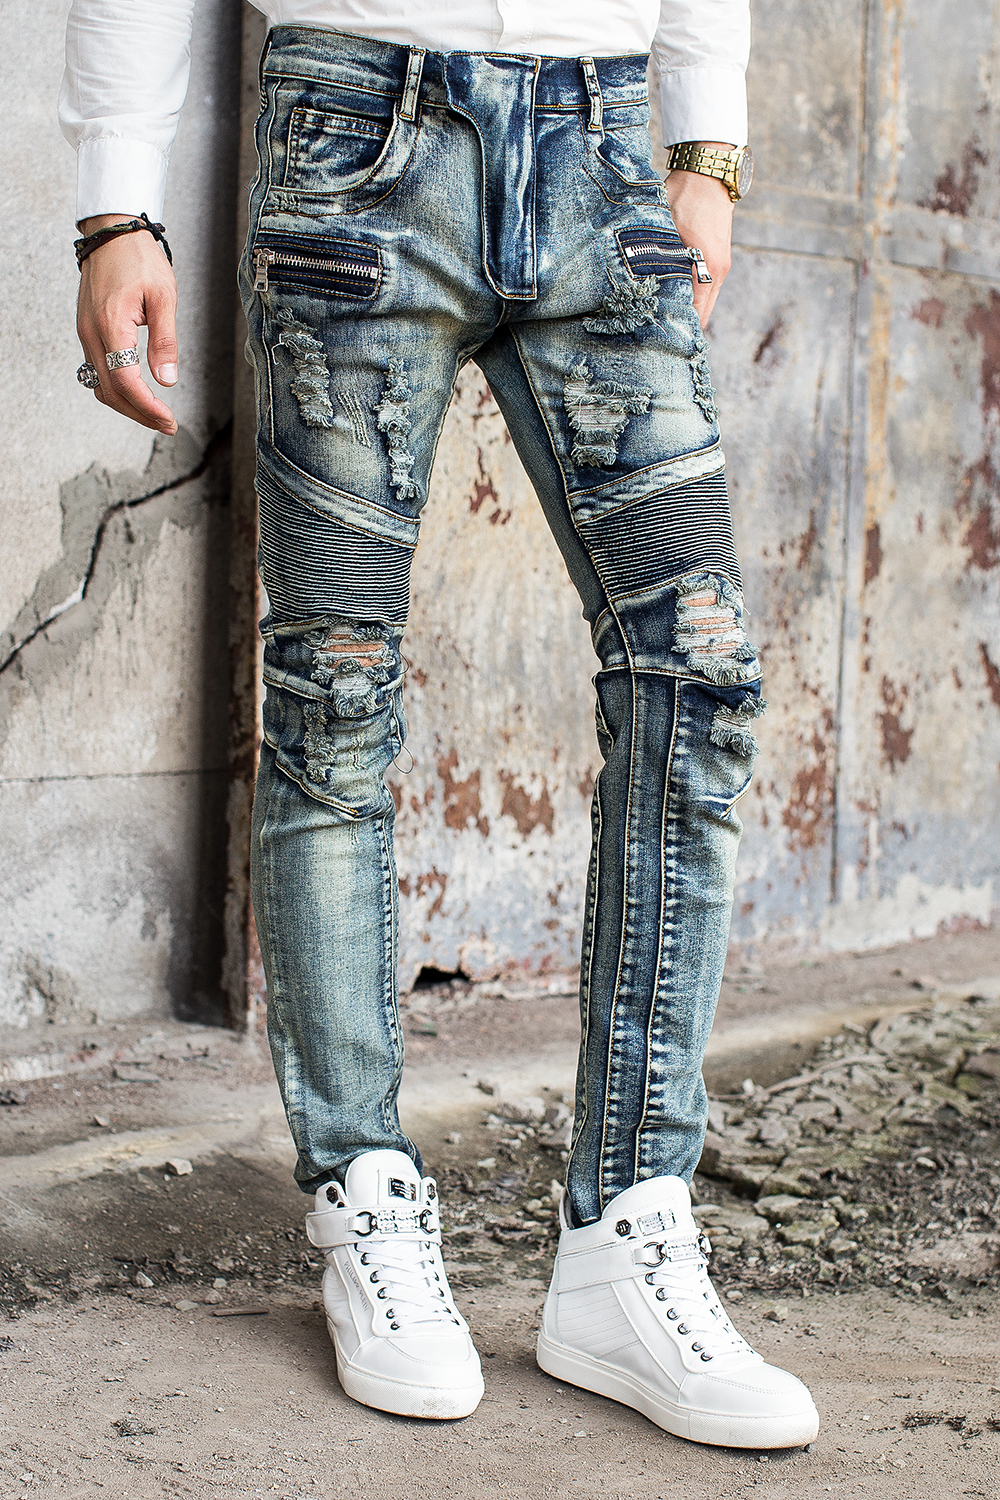 Free Shipping High Quality Design Biker Jeans Men Slim Fit Skinny Straight Mens Jeans With Holes